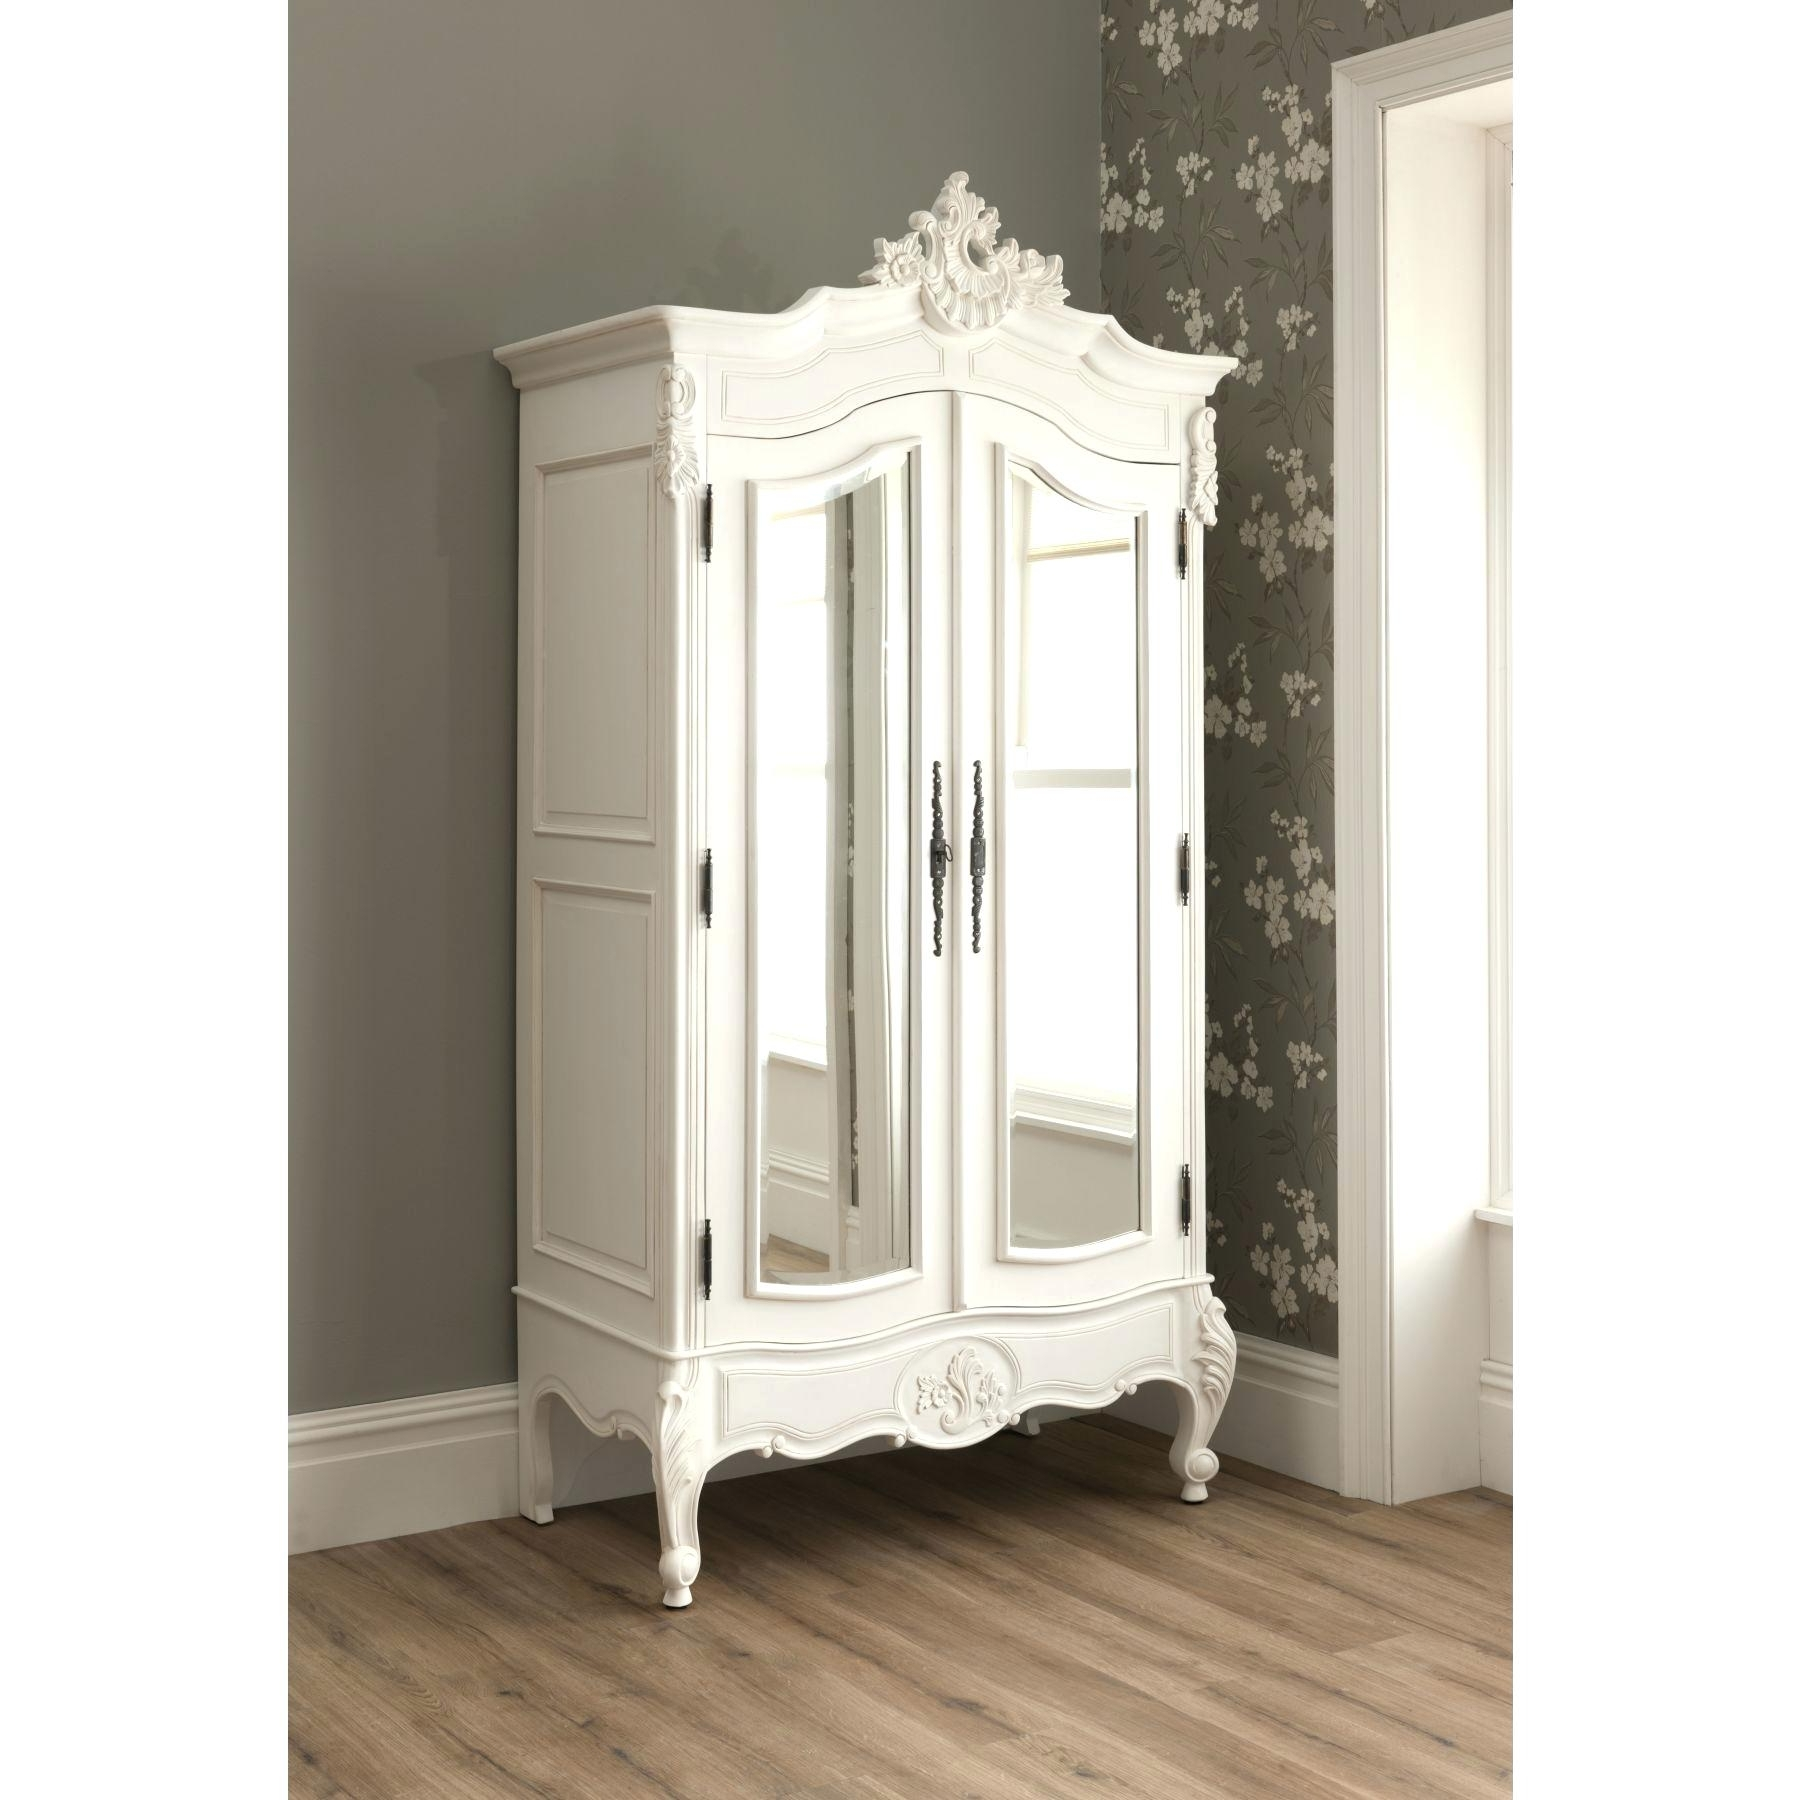 Most Current White Armoire Wardrobe S Cheap French With Mirror – Brashmagazine For Wicker Armoire Wardrobes (View 12 of 15)